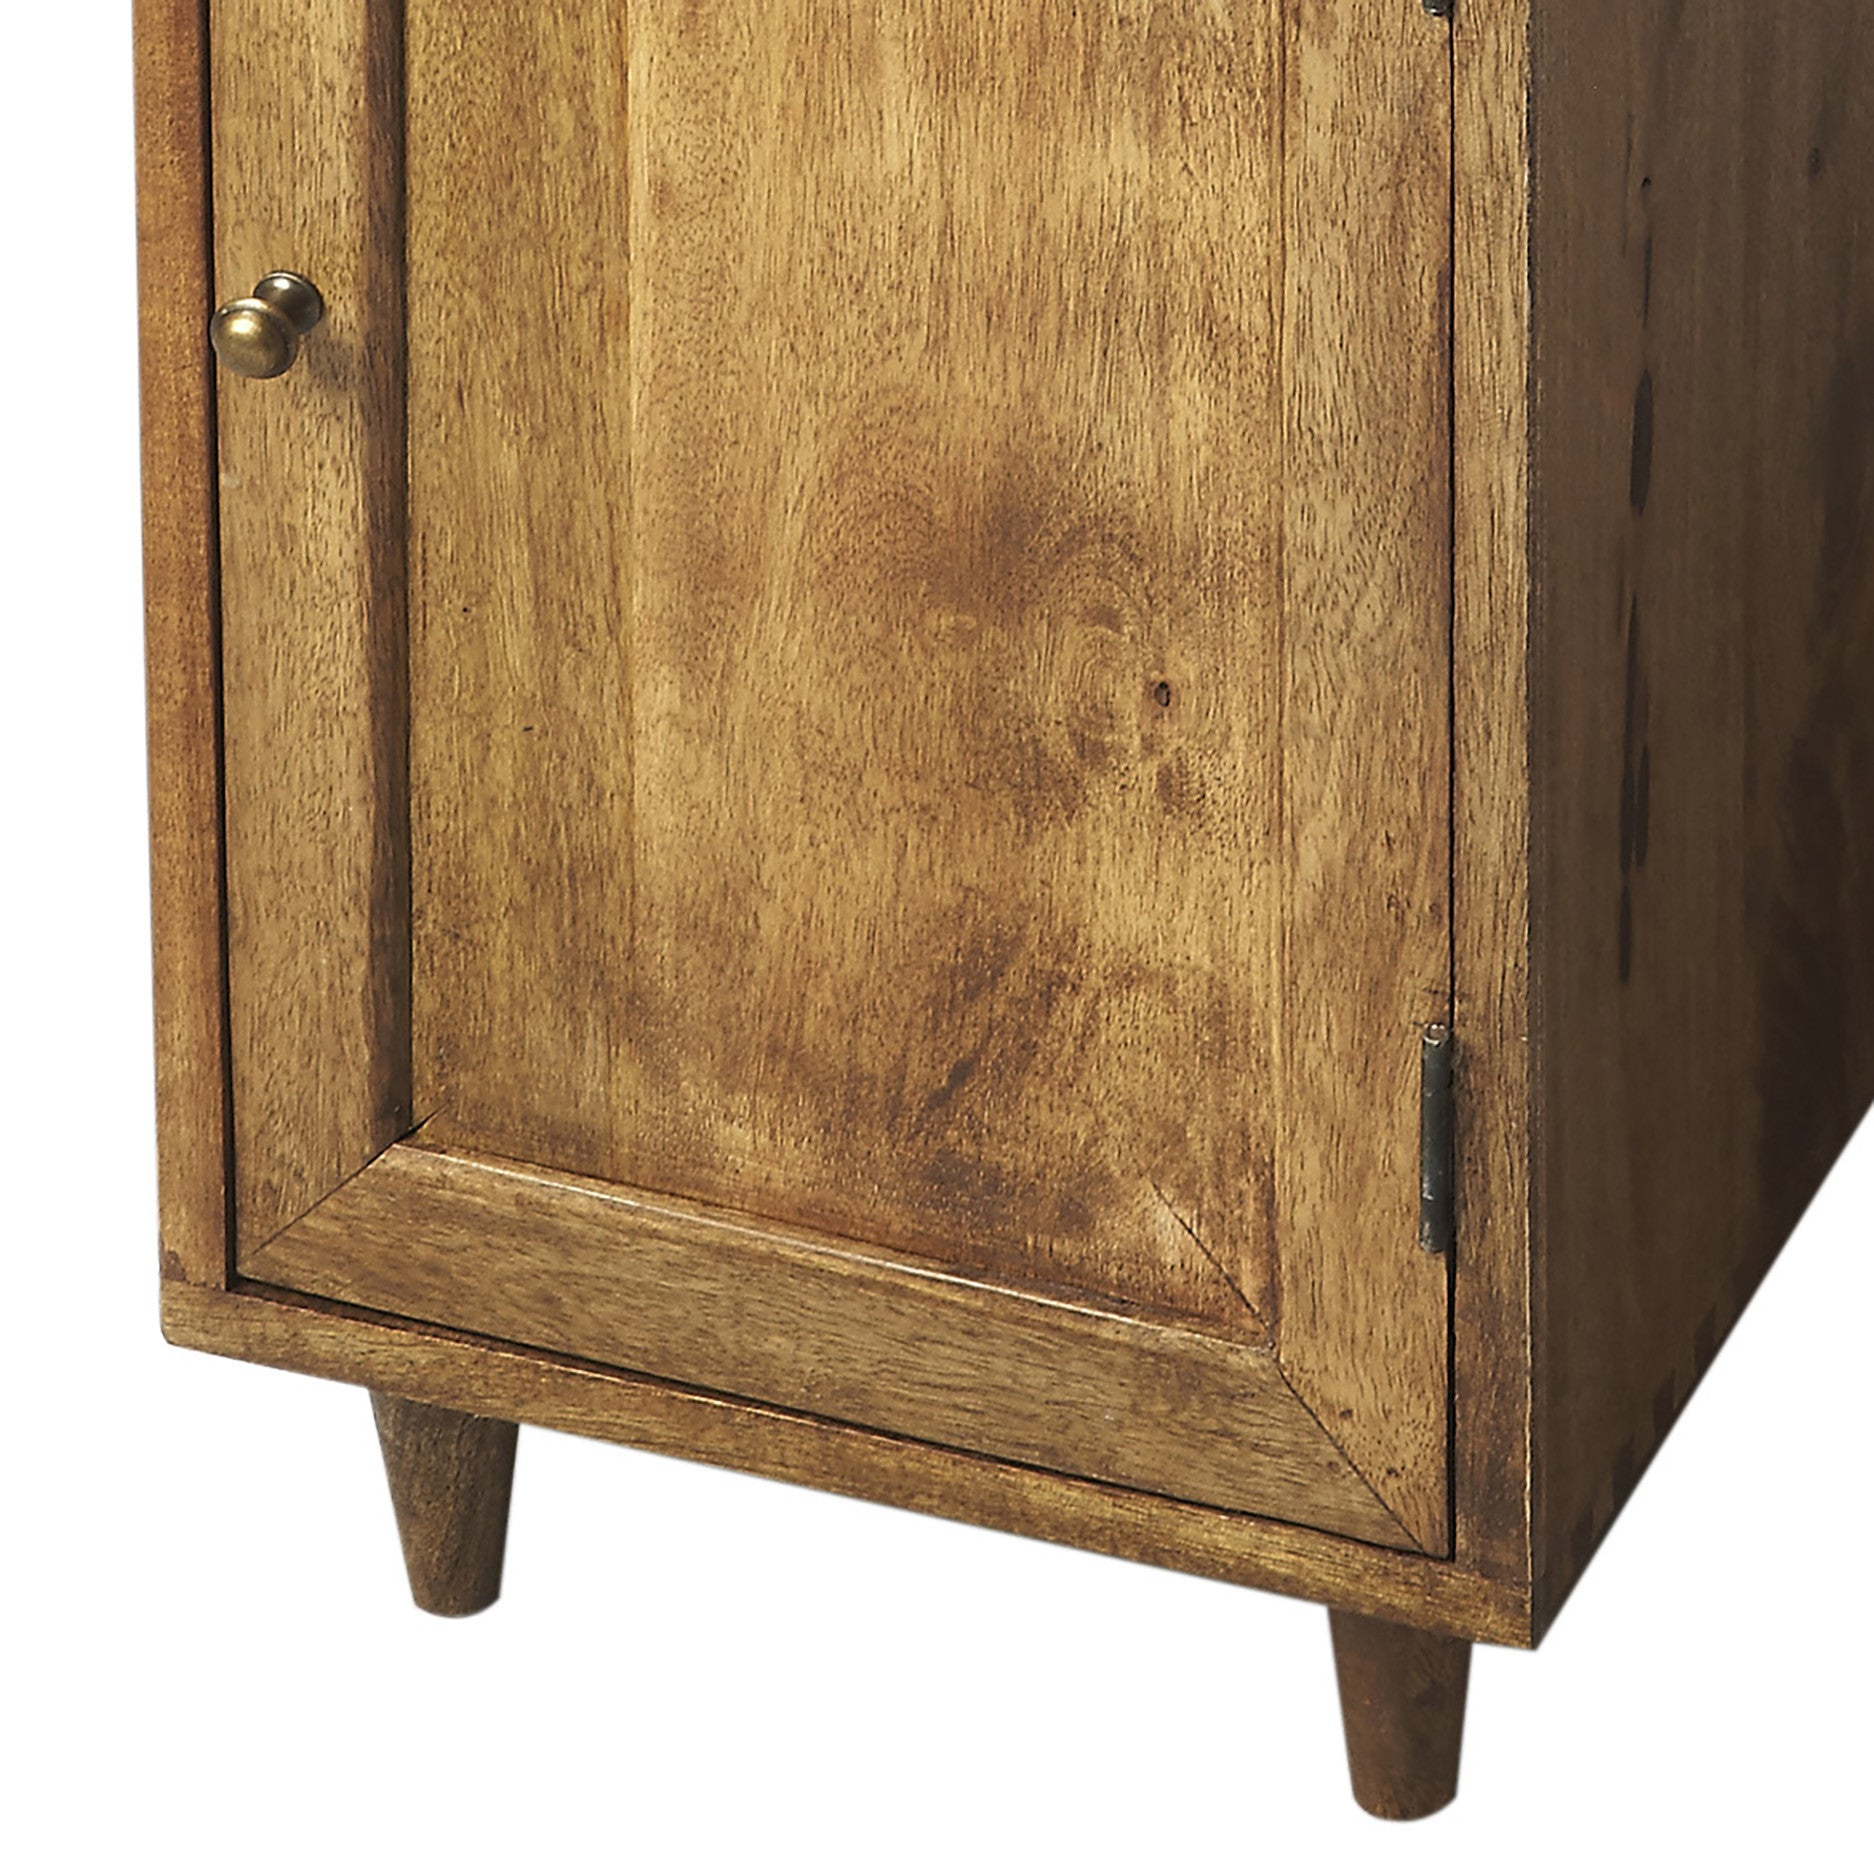 Rustic end tables with storage - Mid Century Modern End Table With Storage